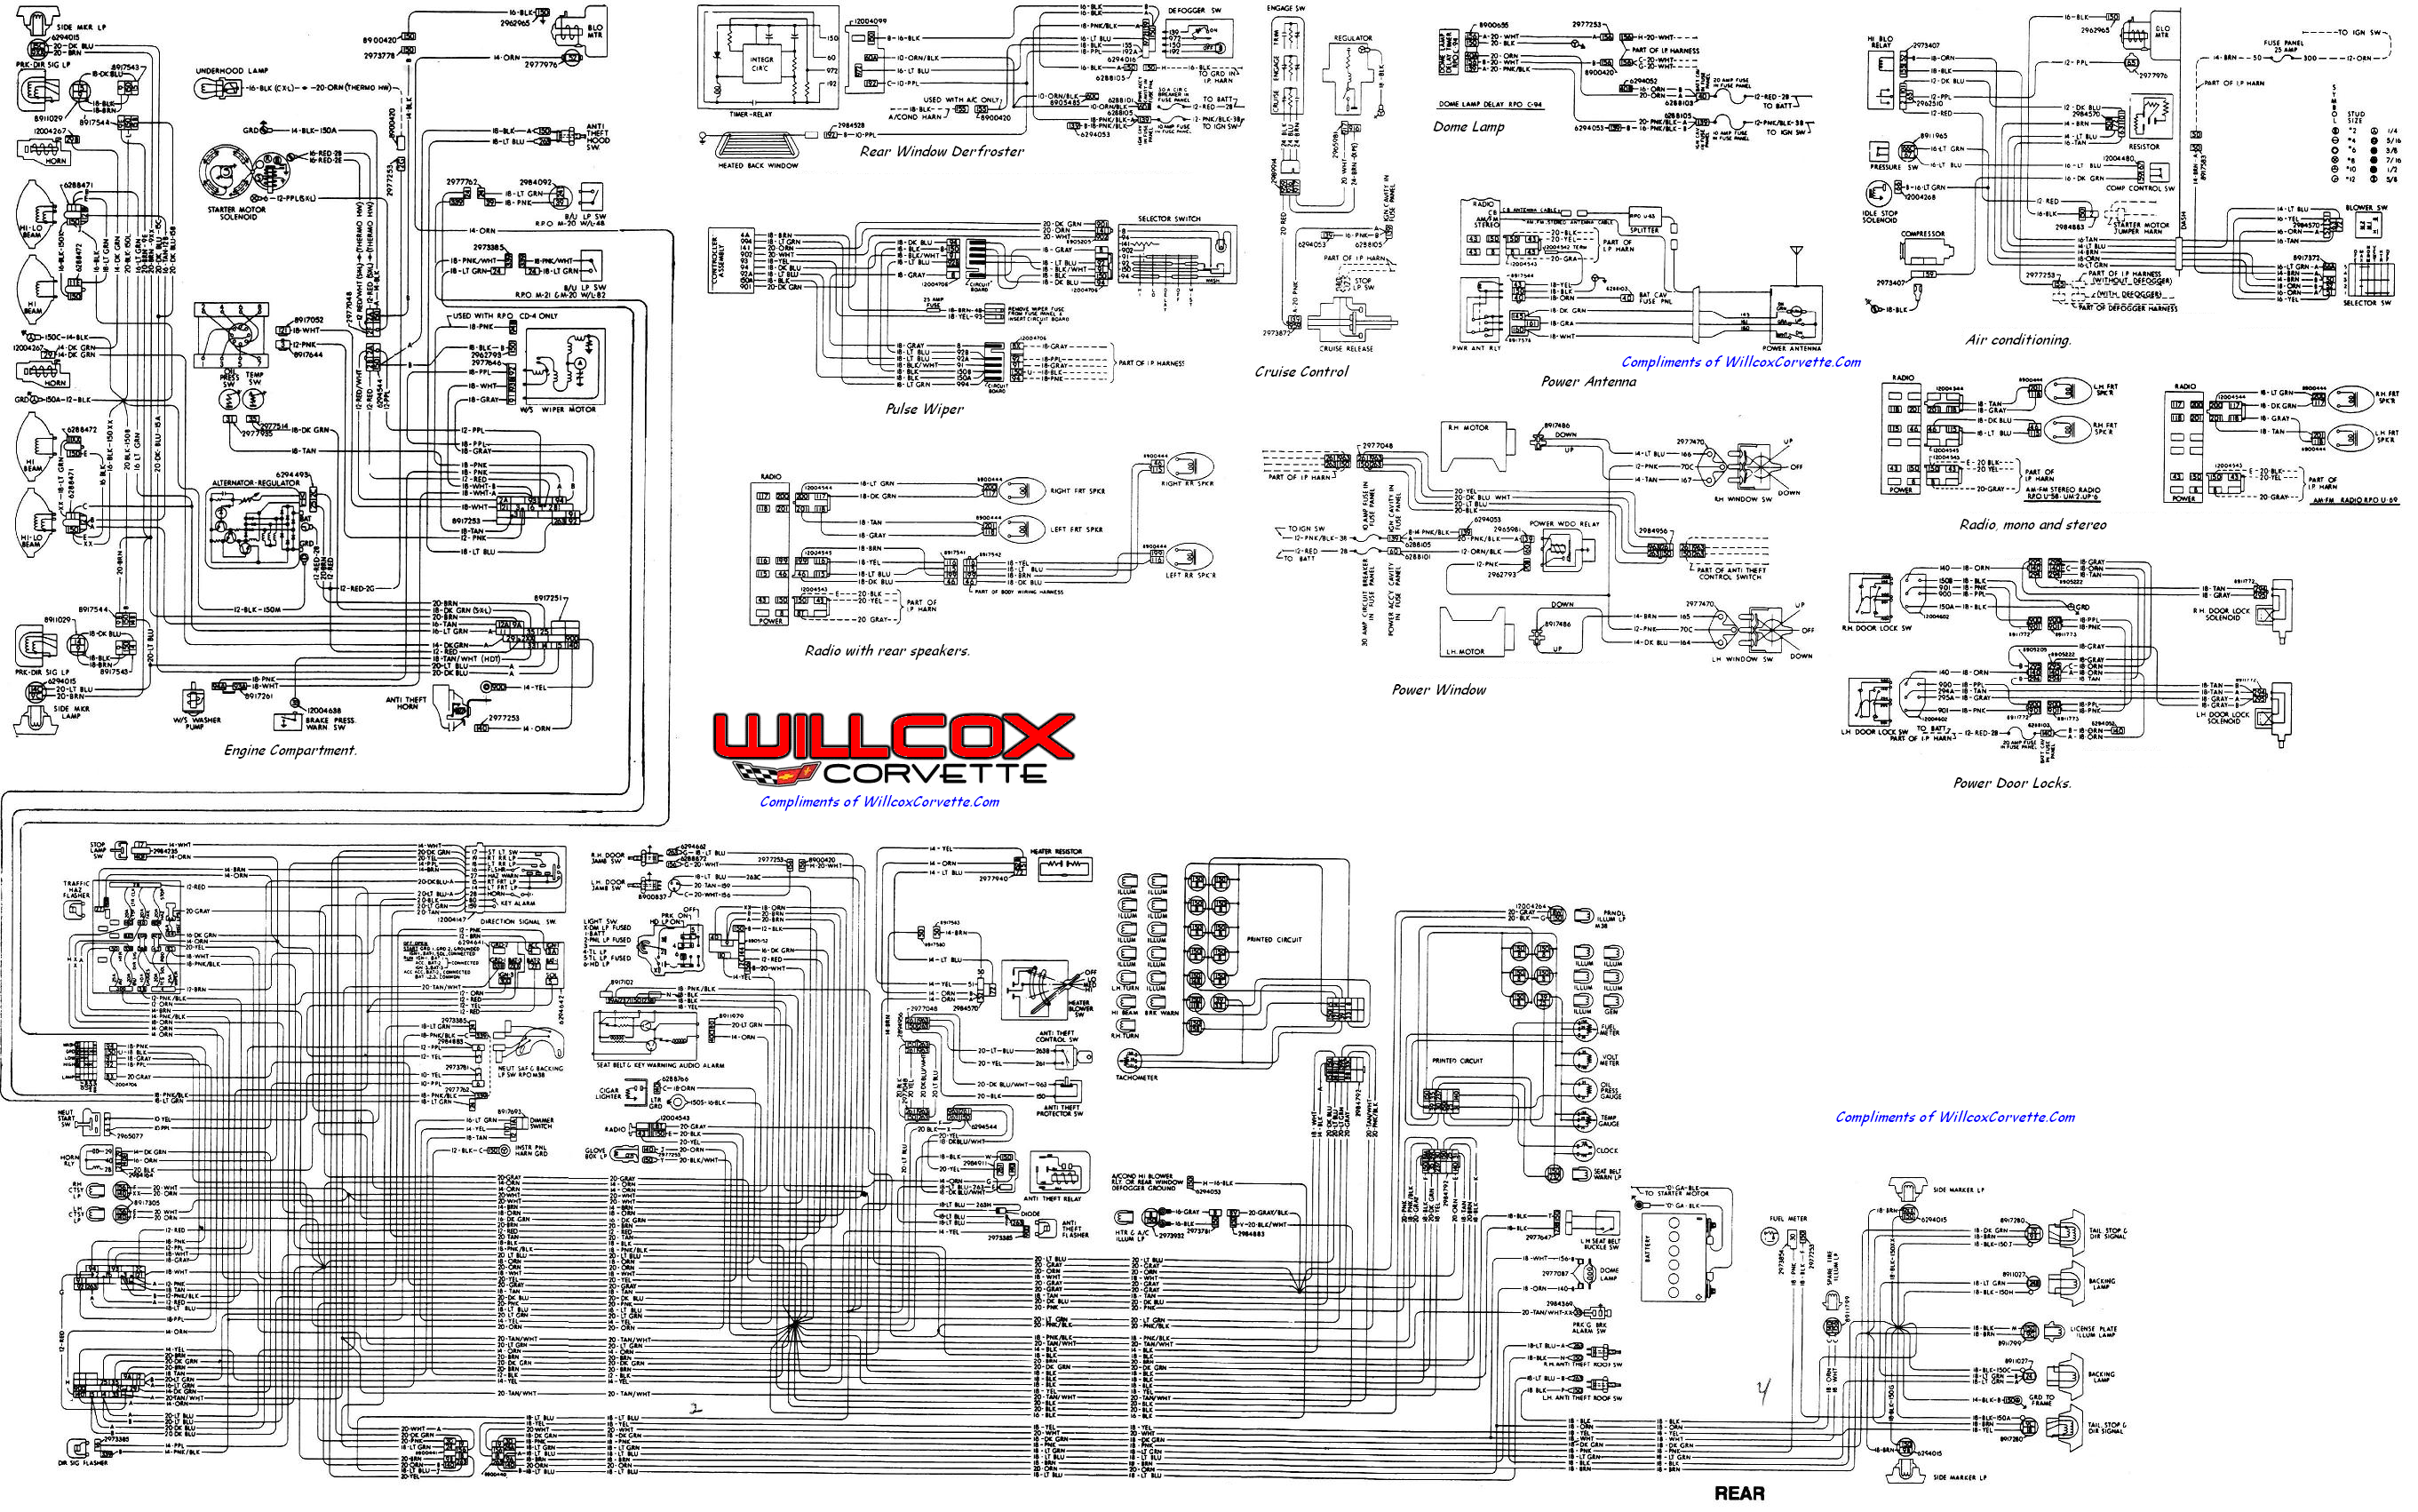 2002 acura rl fuse box diagram great engine wiring 2002 acura rl fuse box diagram wiring library rh 85 polaroid liquide de 2005 acura rl fuse box diagram 2002 acura rl headlight